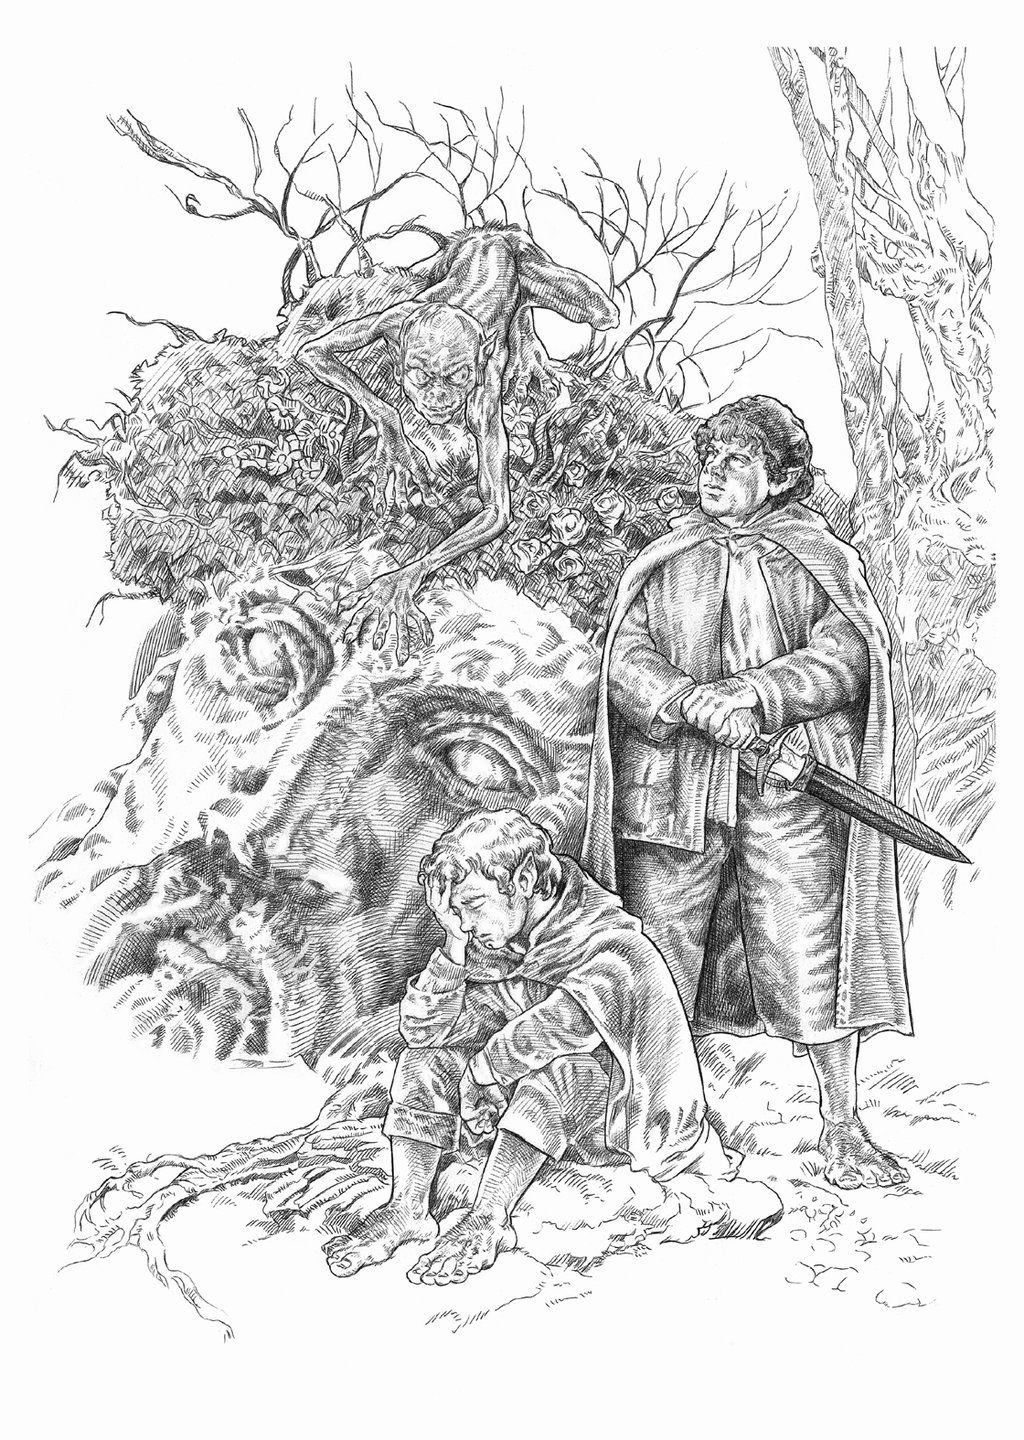 Frodo Y Sam By Nachocastro Deviantart Com On Deviantart Gollum Frodo And Sam From Lord Of The Rings Coloring Pages Colorful Drawings Coloring Books